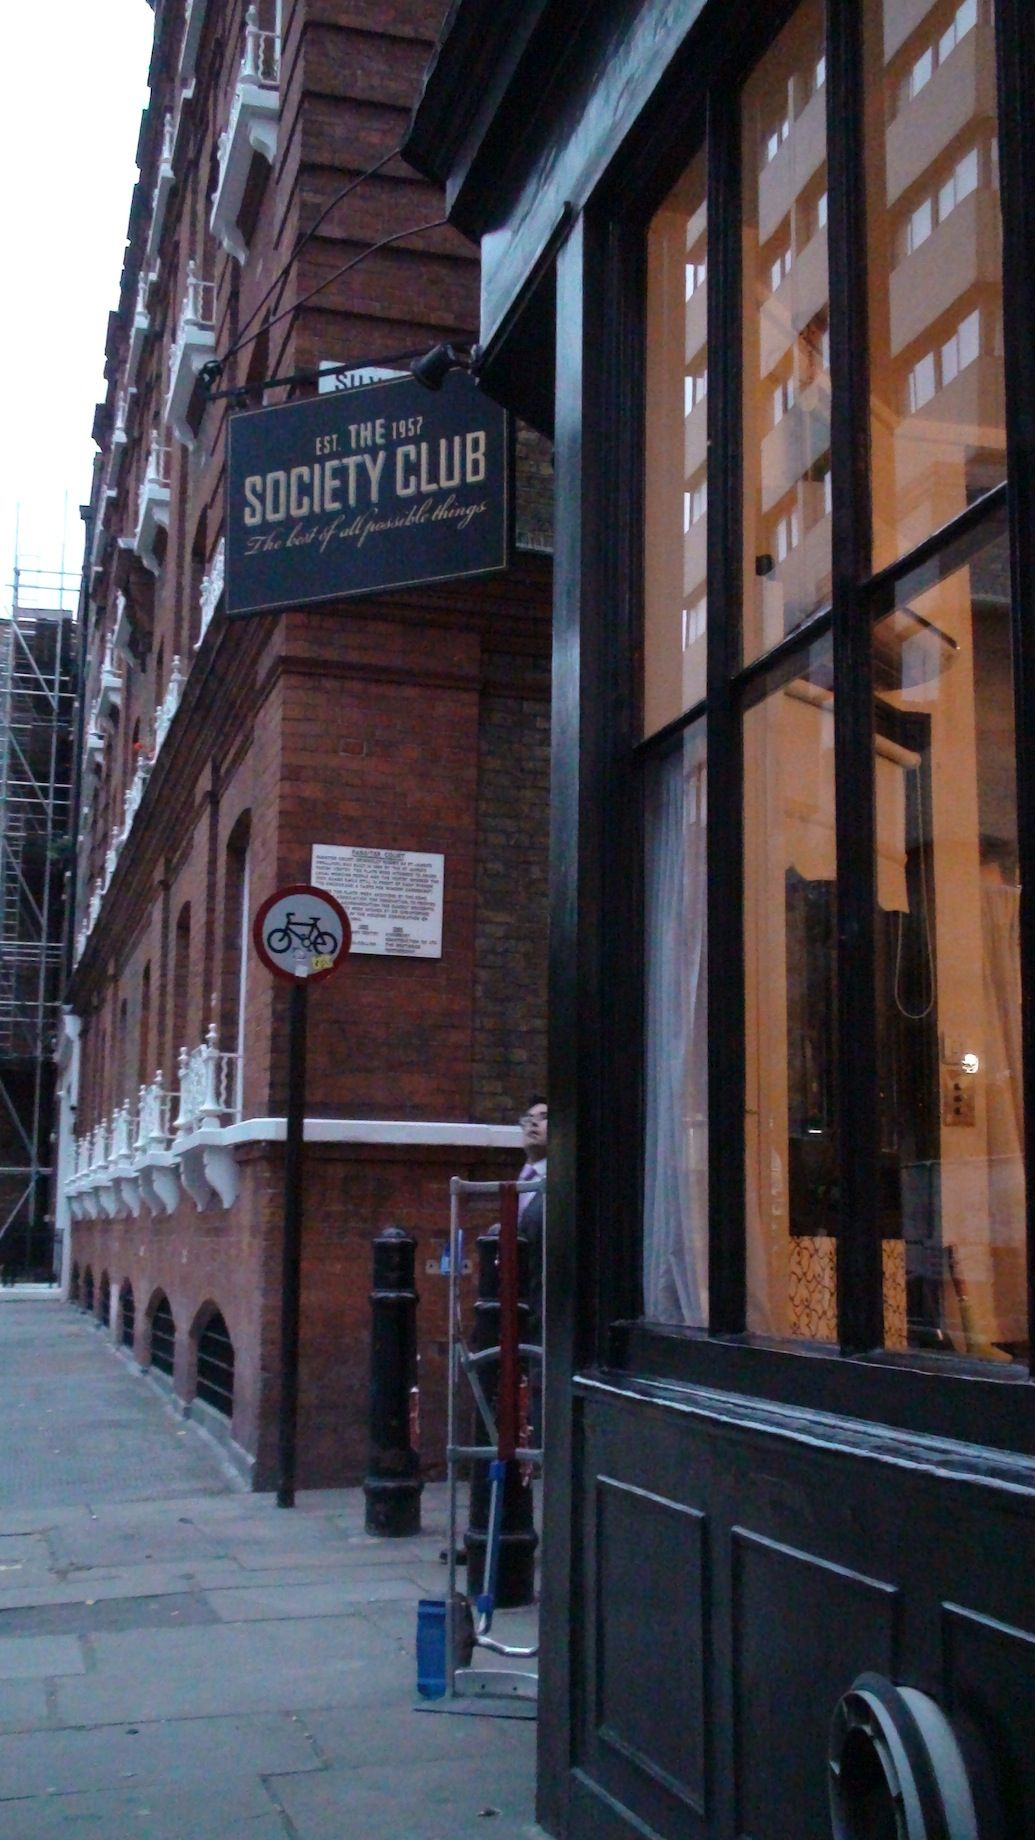 Must do ! The Society Club, London. A library bar, are you kidding me? Now this sounds like the most perfect downtime a girl could ask for! Picking out a good book and having a glass of wine in a cozy atmosphere is a perfect way to escape the busy bustle of London!